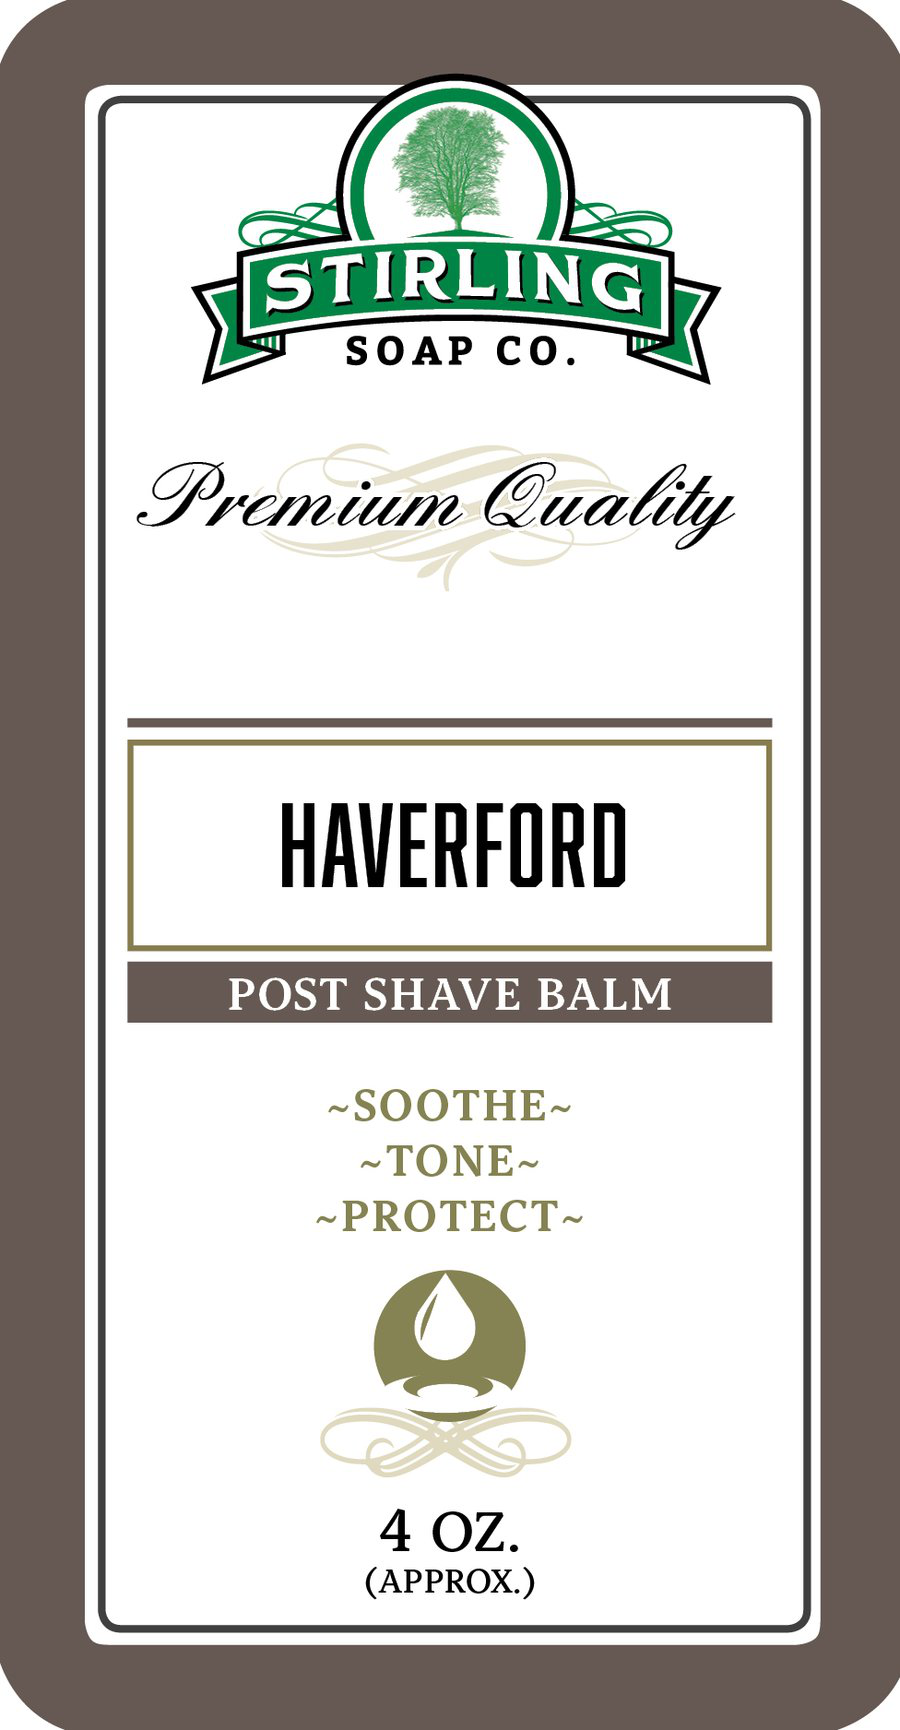 Stirling Soap Co. - Haverford - Balm image